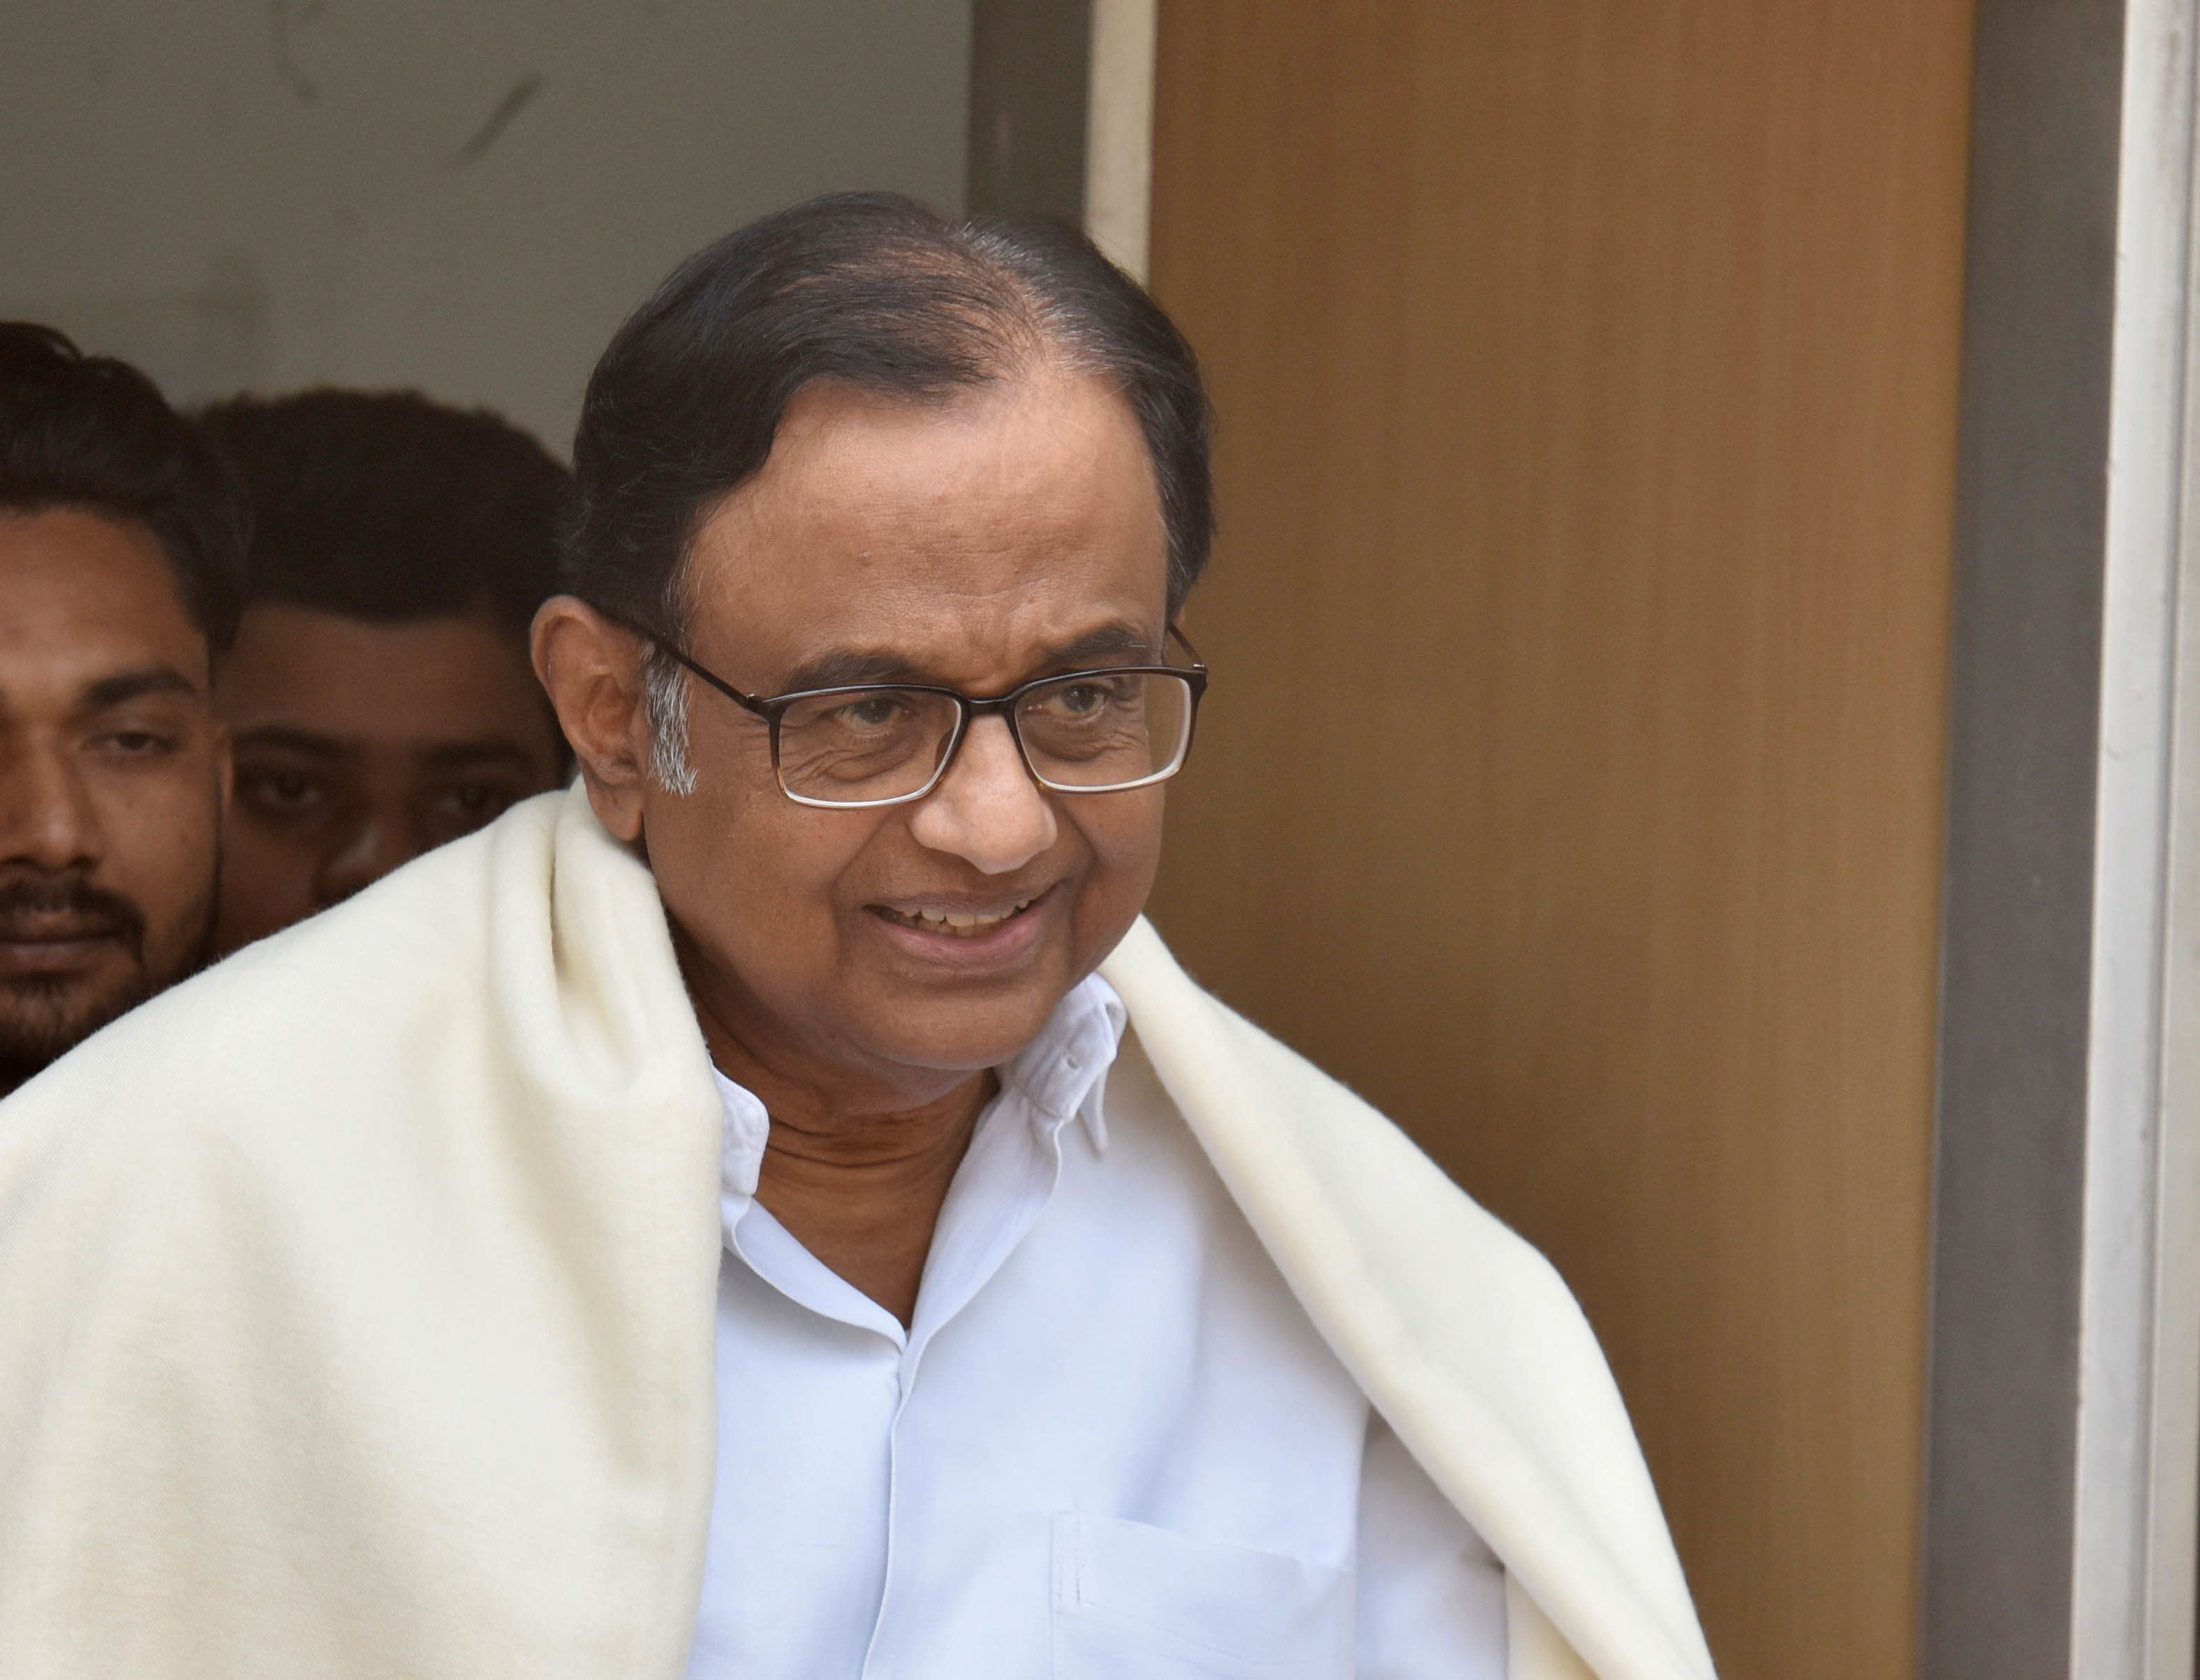 'Welcome The Search Party': P Chidambaram Claims IT Raids Being Planned At His